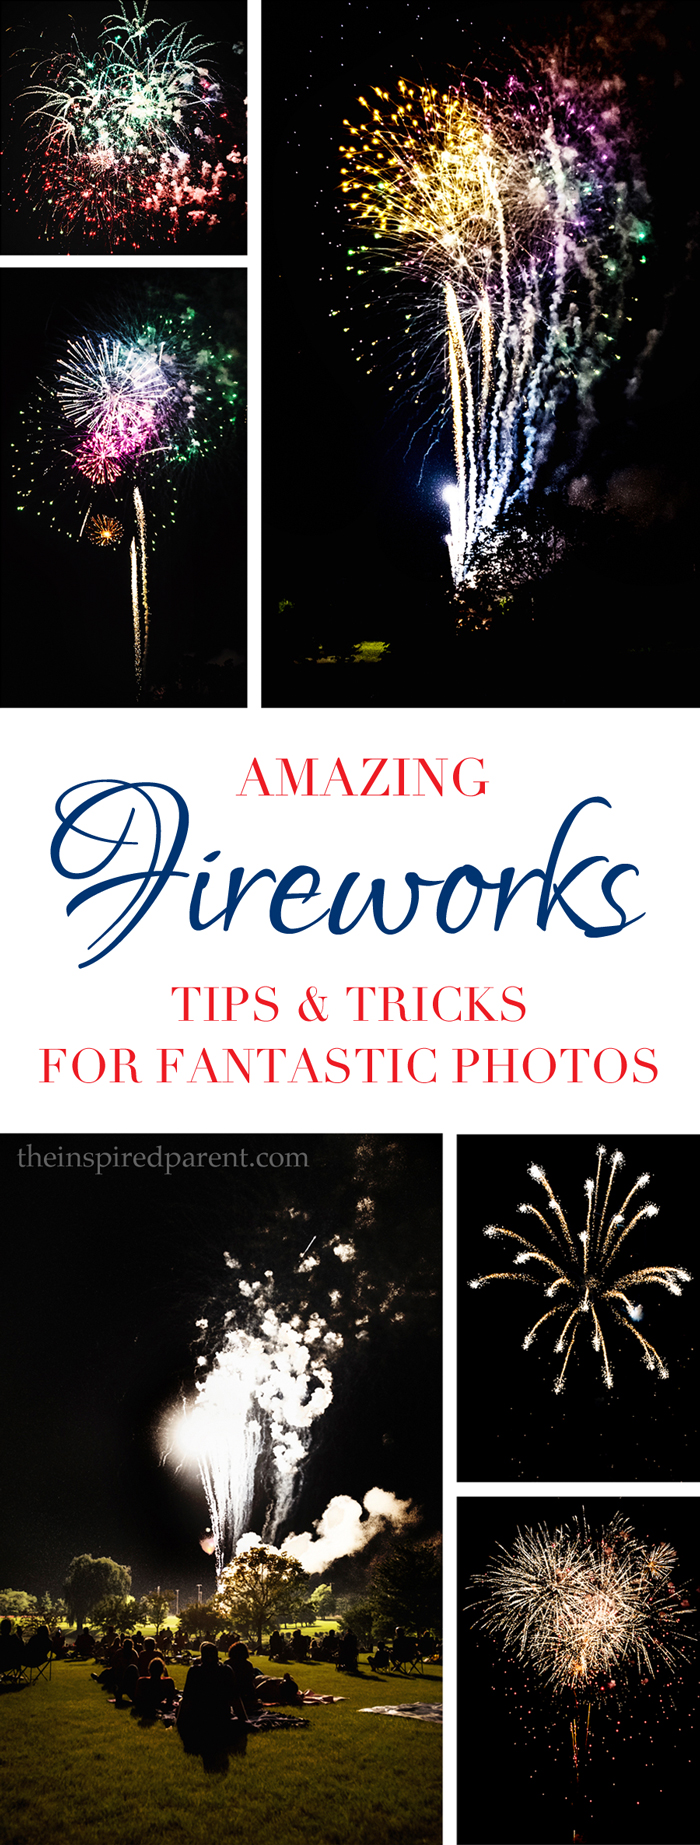 Fireworks Tips & Tricks | theinspiredparent.com